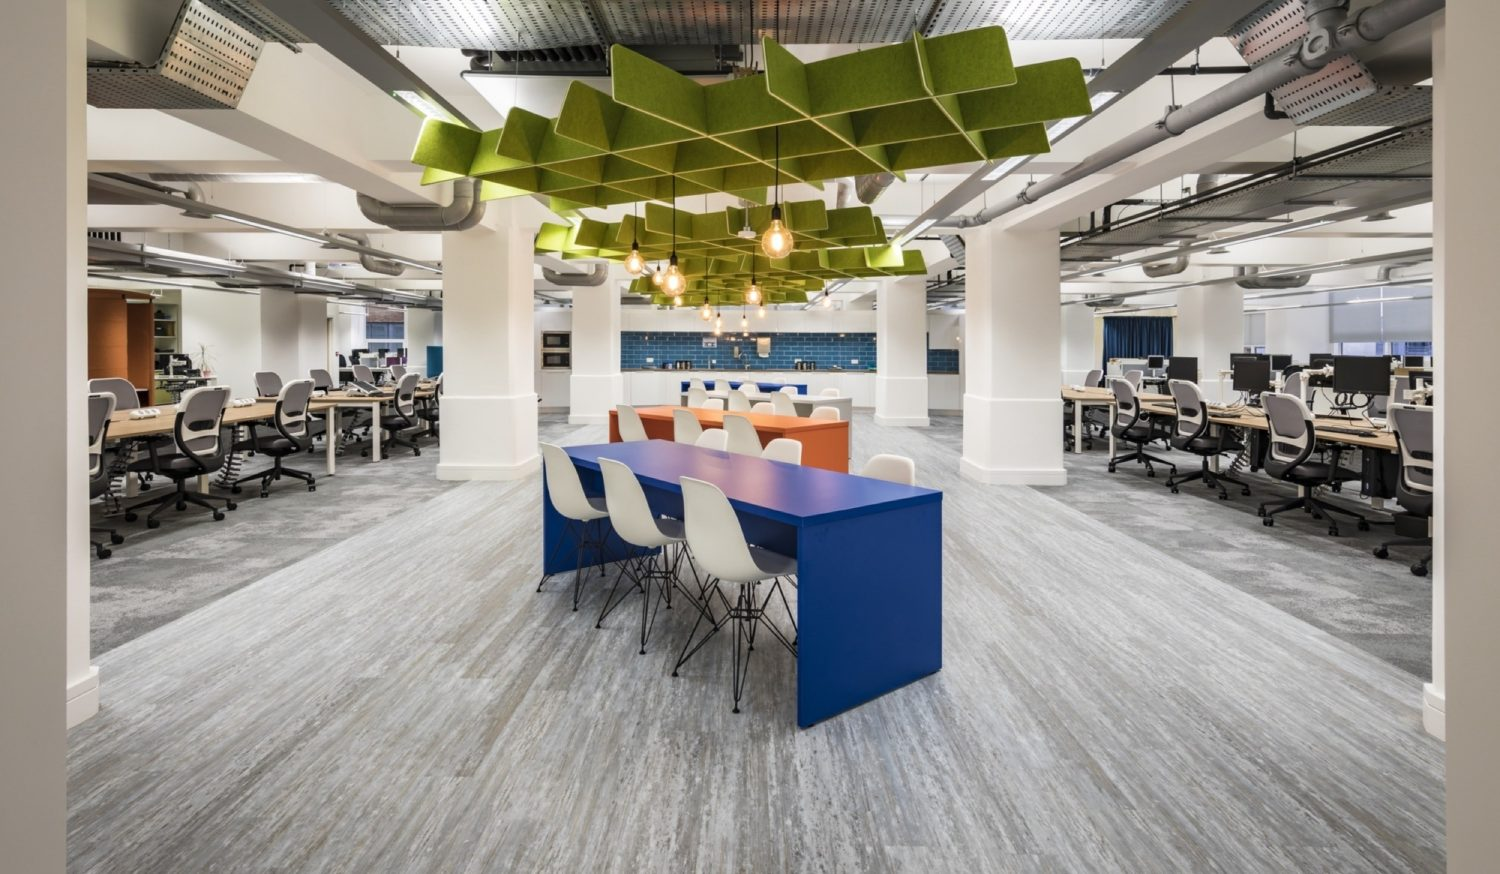 The Growth Company activity based workspace fit out